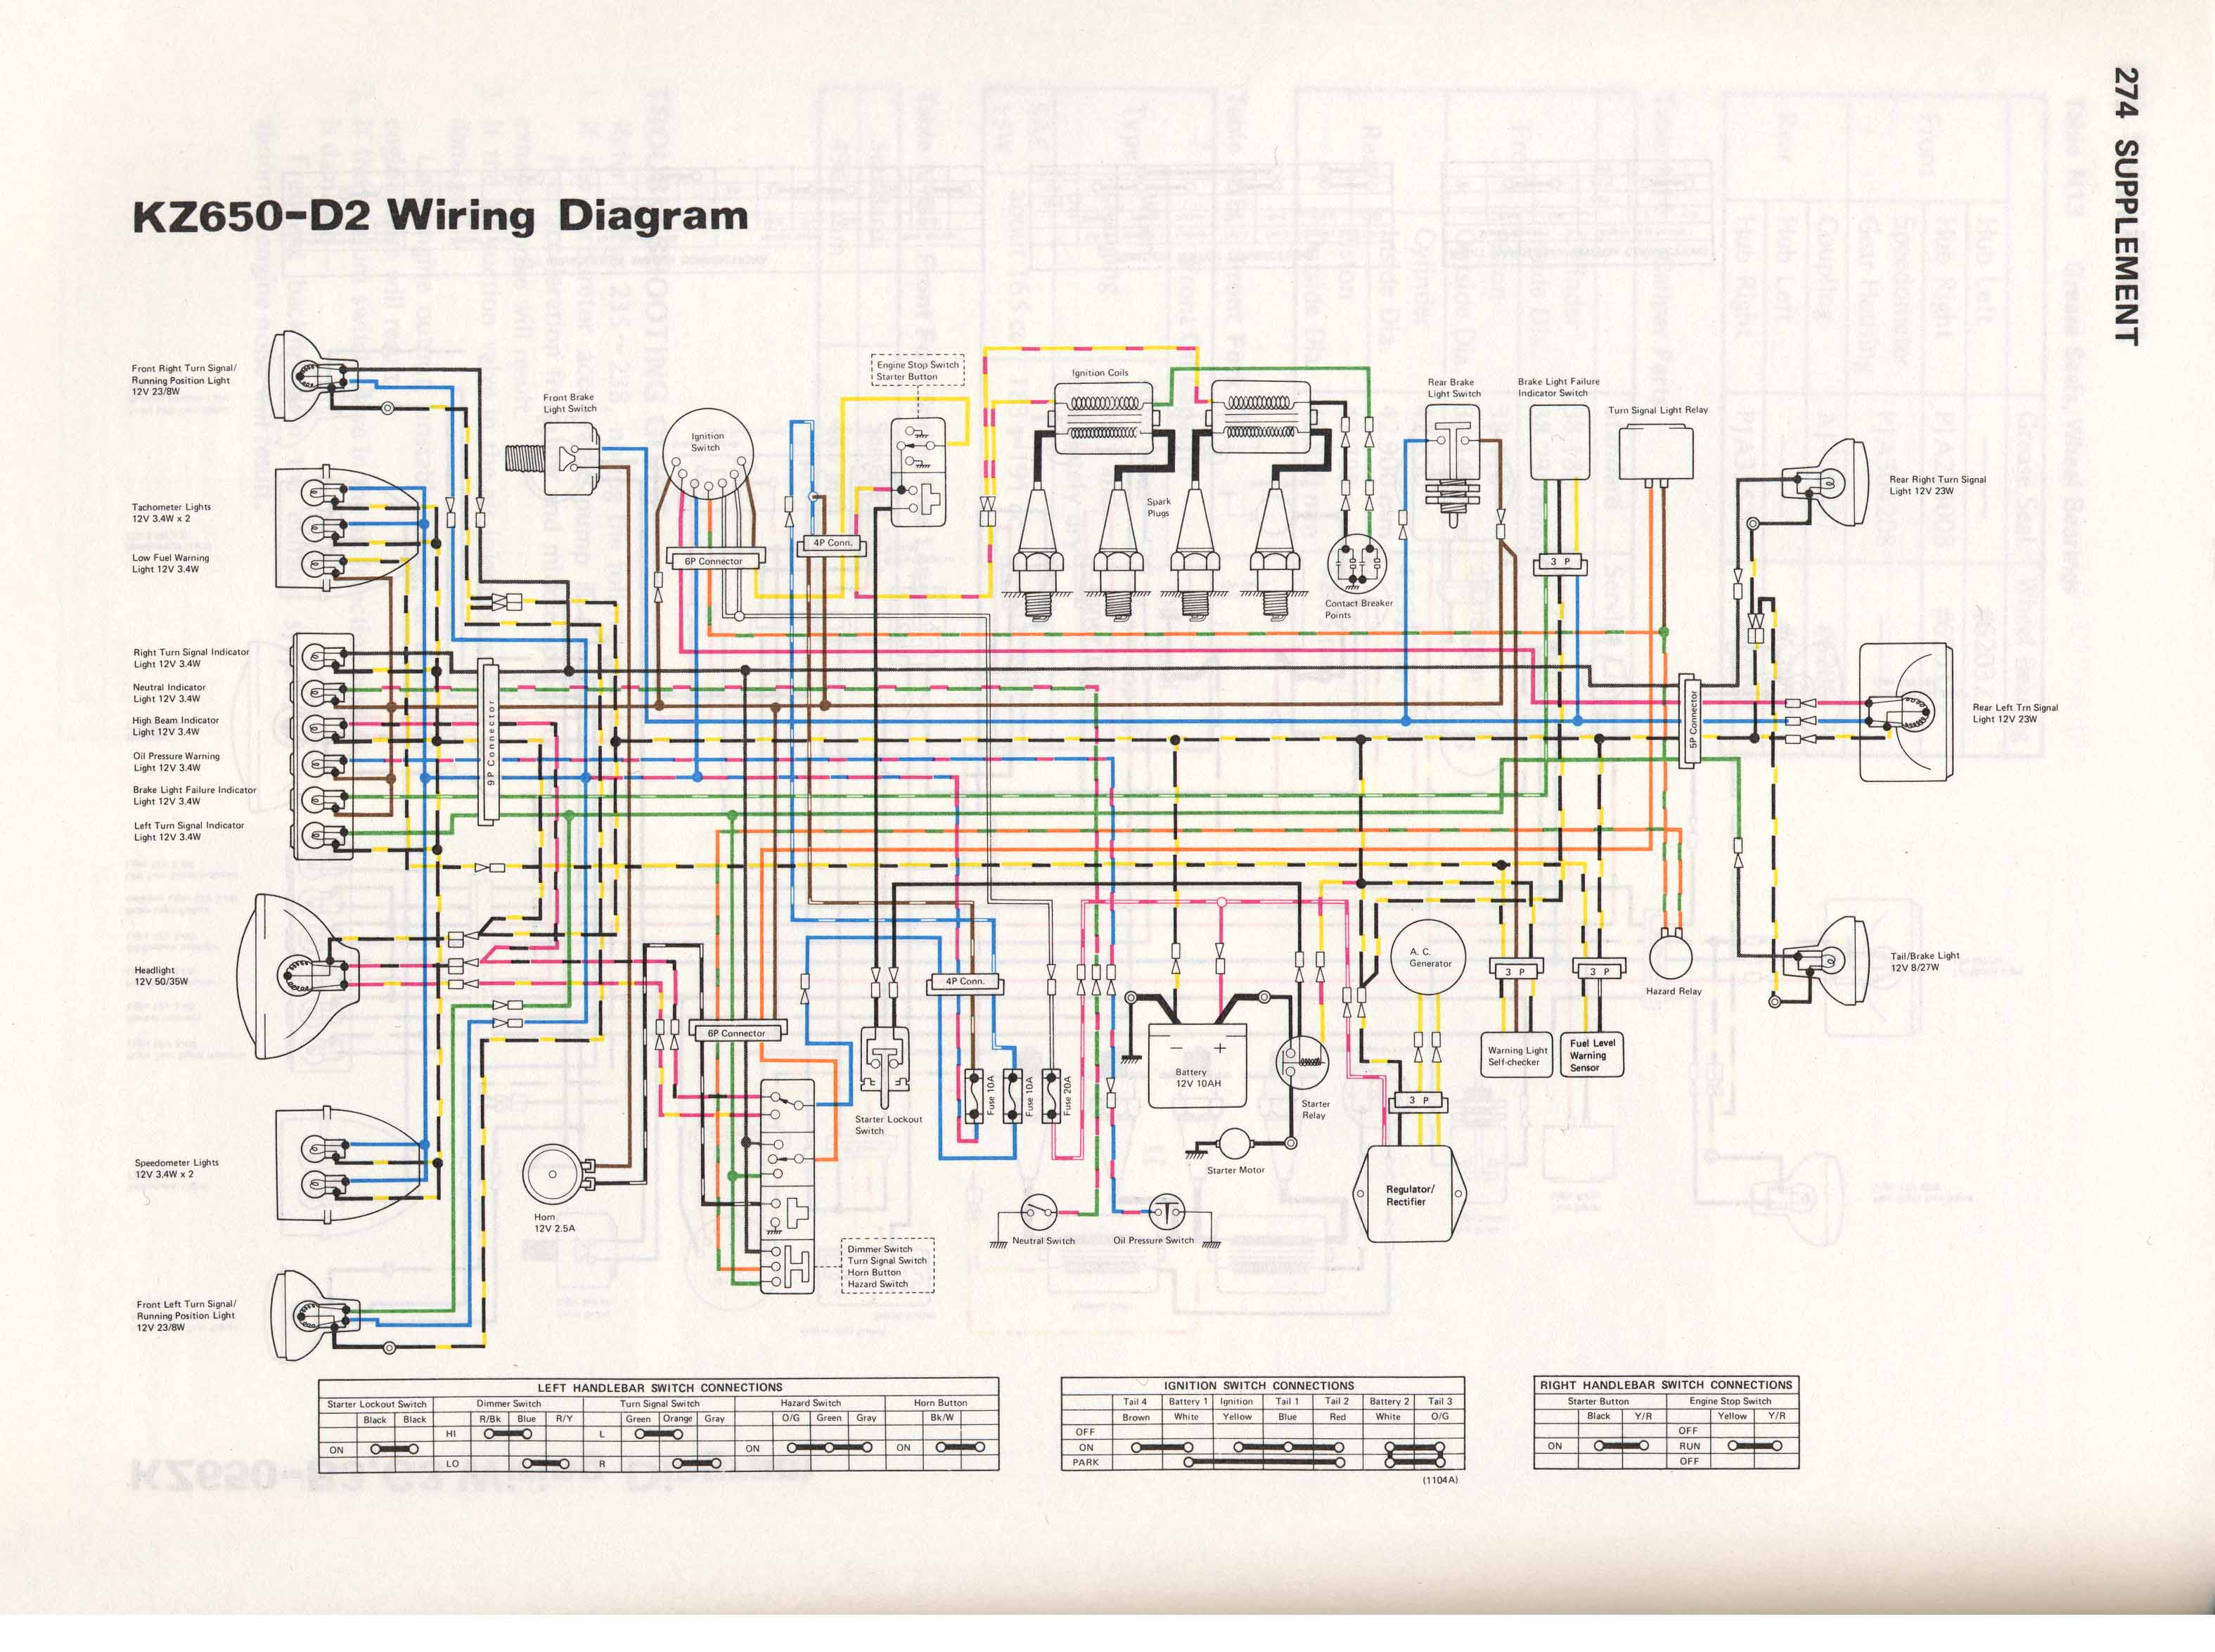 KZ650 D2 kz650 info wiring diagrams kawasaki teryx wiring diagram at honlapkeszites.co